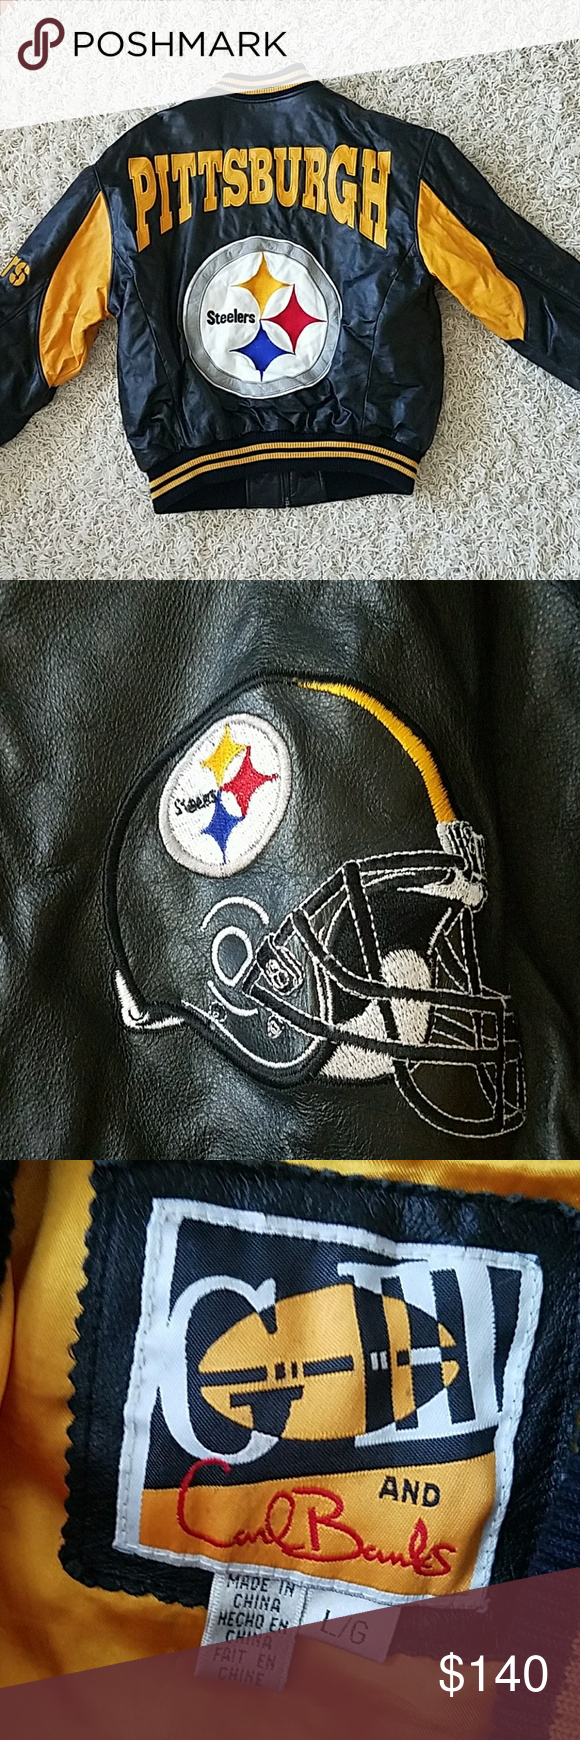 Vintage Pittsburgh Steelers leather coat Clothes design